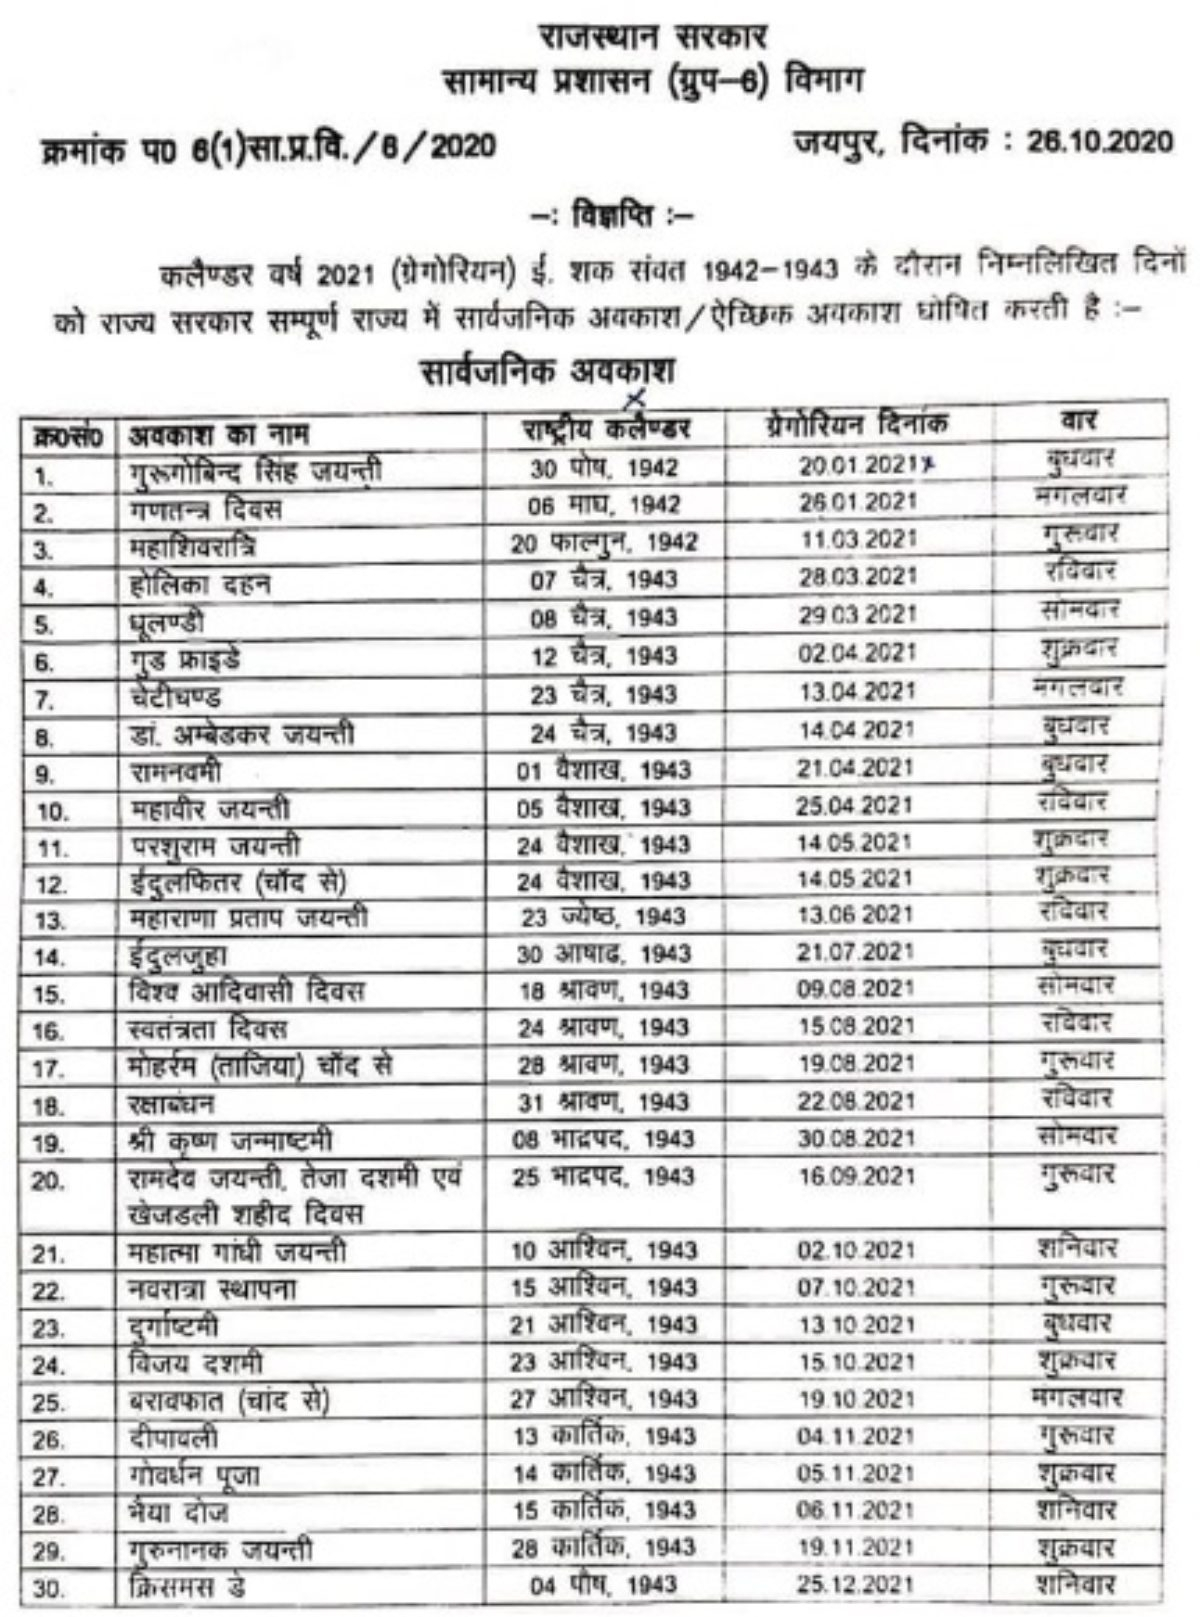 Collect Rajasthan Govt Calendar 2021 With Holidays